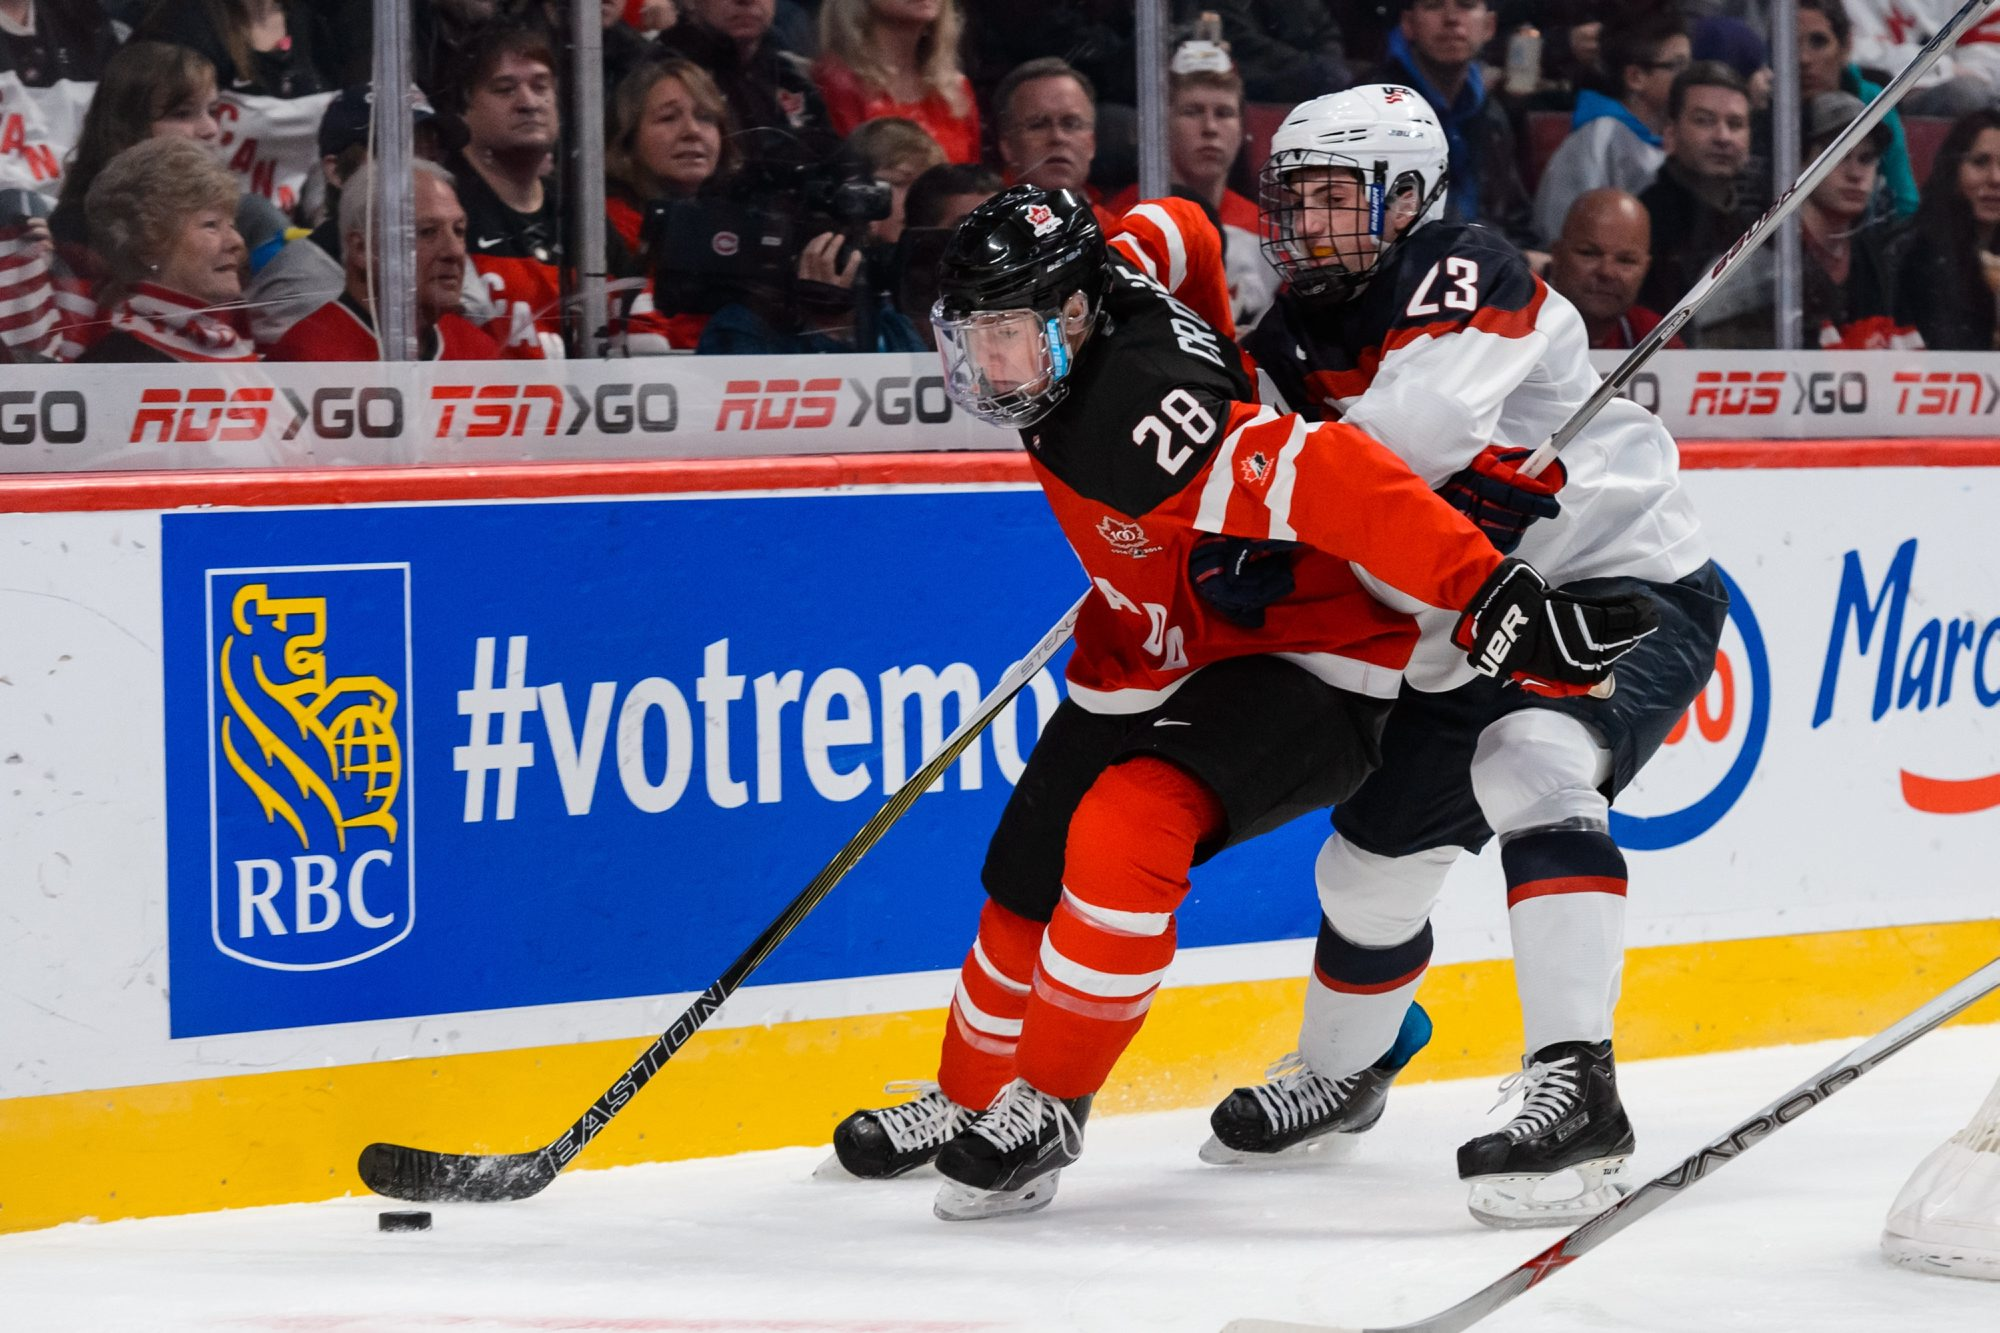 MONTREAL, QC - DECEMBER 31:  Zach Werenski #23 of Team United States challenges Lawson Crouse #28 of Team Canada near the boards during the 2015 IIHF World Junior Hockey Championship game at the Bell Centre on December 31, 2014 in Montreal, Quebec, Canada.  (Photo by Minas Panagiotakis/)